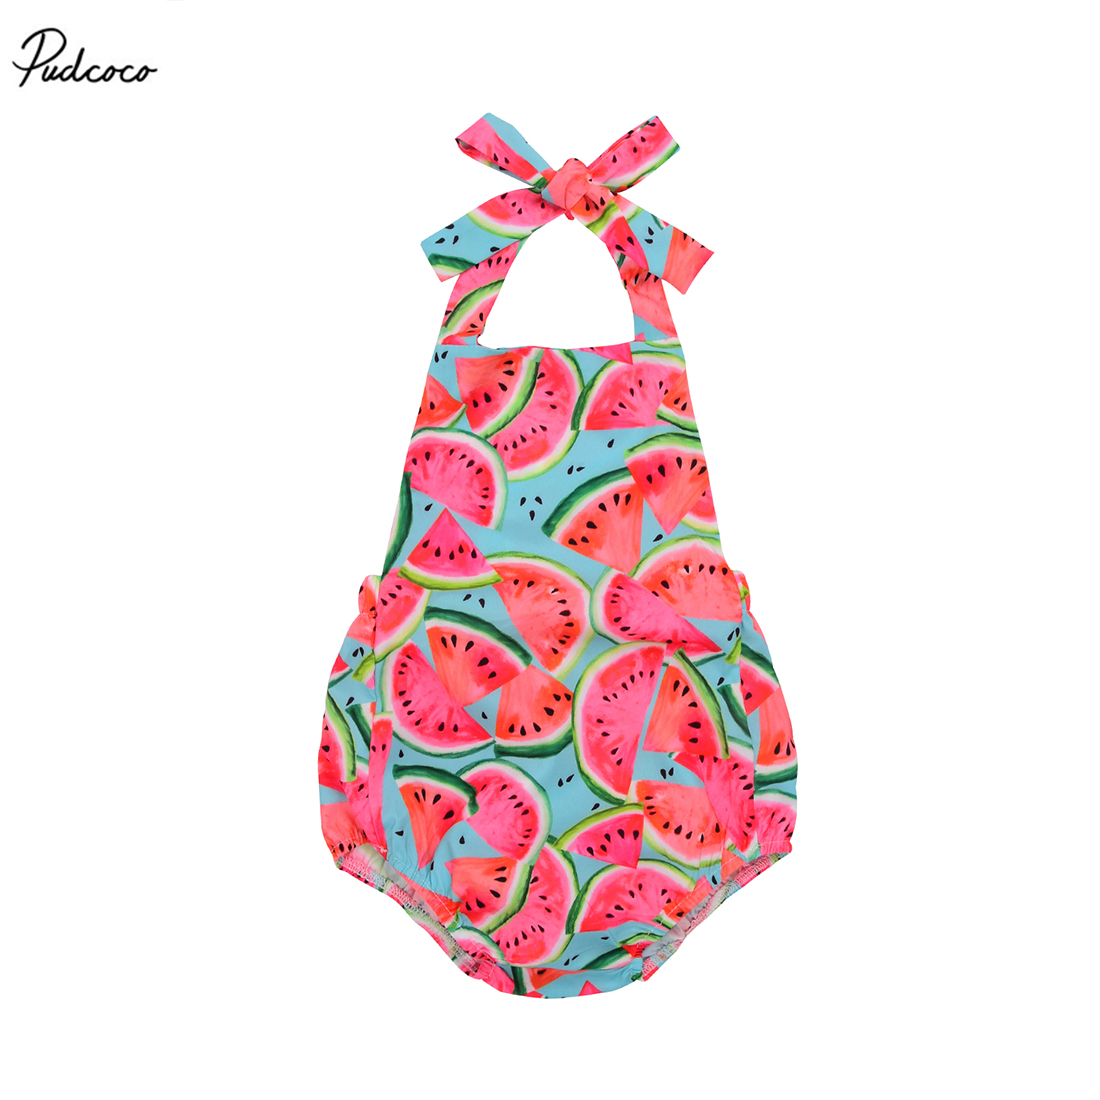 Pudcoco Cute Watermelon   Romper   Toddler Baby Kids Girls 2017 New Sleeveless Strap Backless Jumpsuit Outfits Sunsuit One-pieces